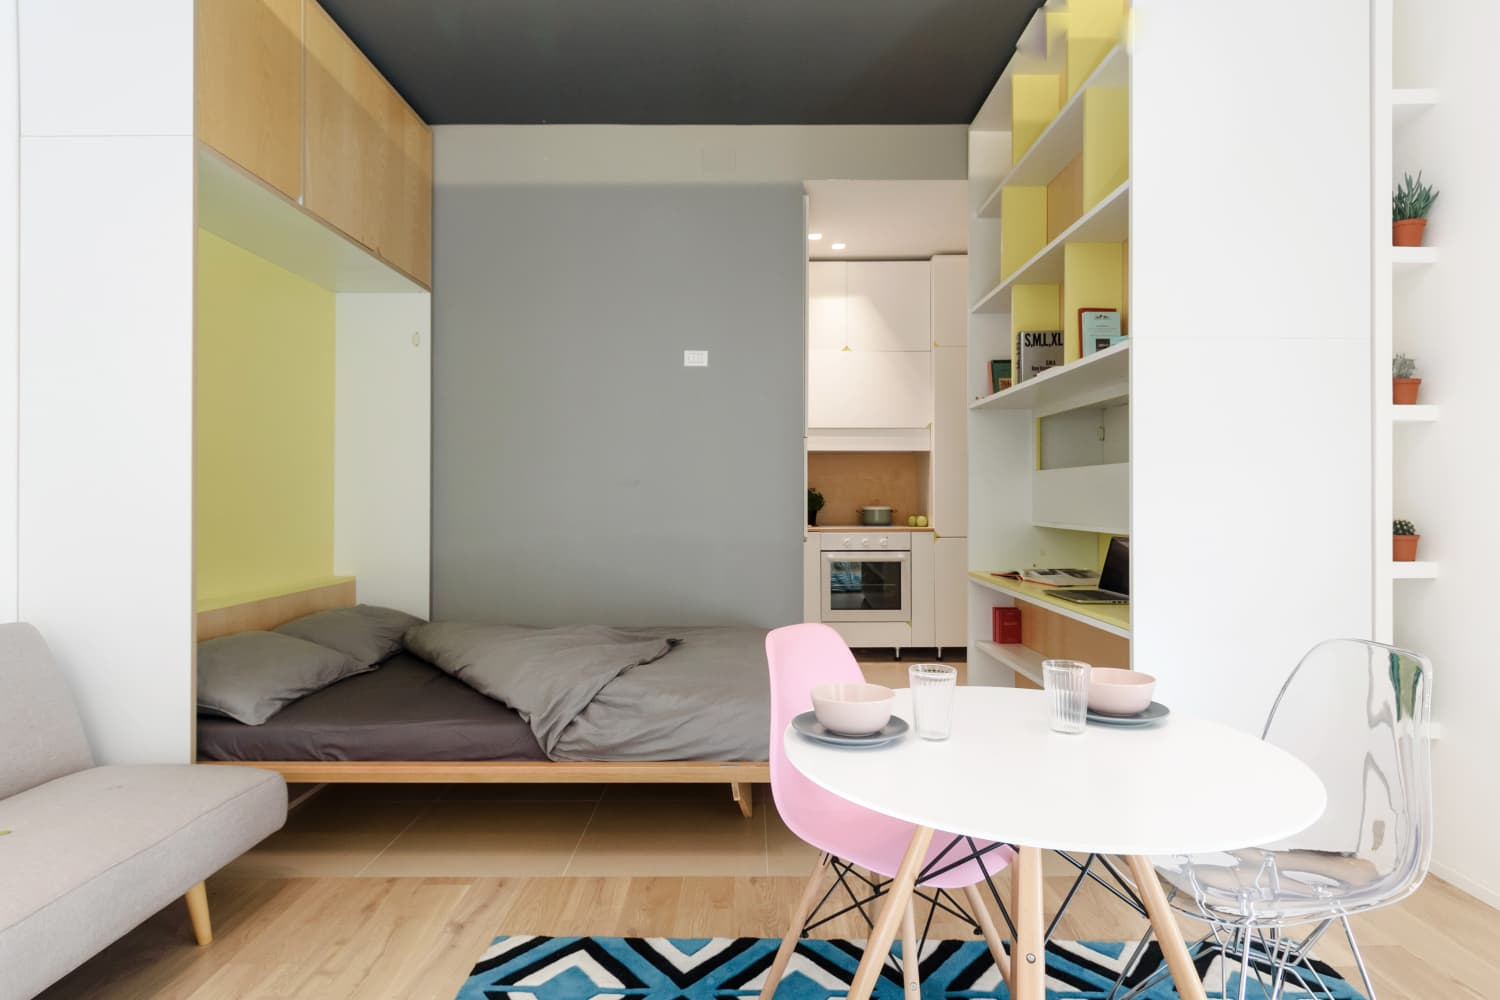 A Tiny Apartment That Transforms Into a Super Efficient Space